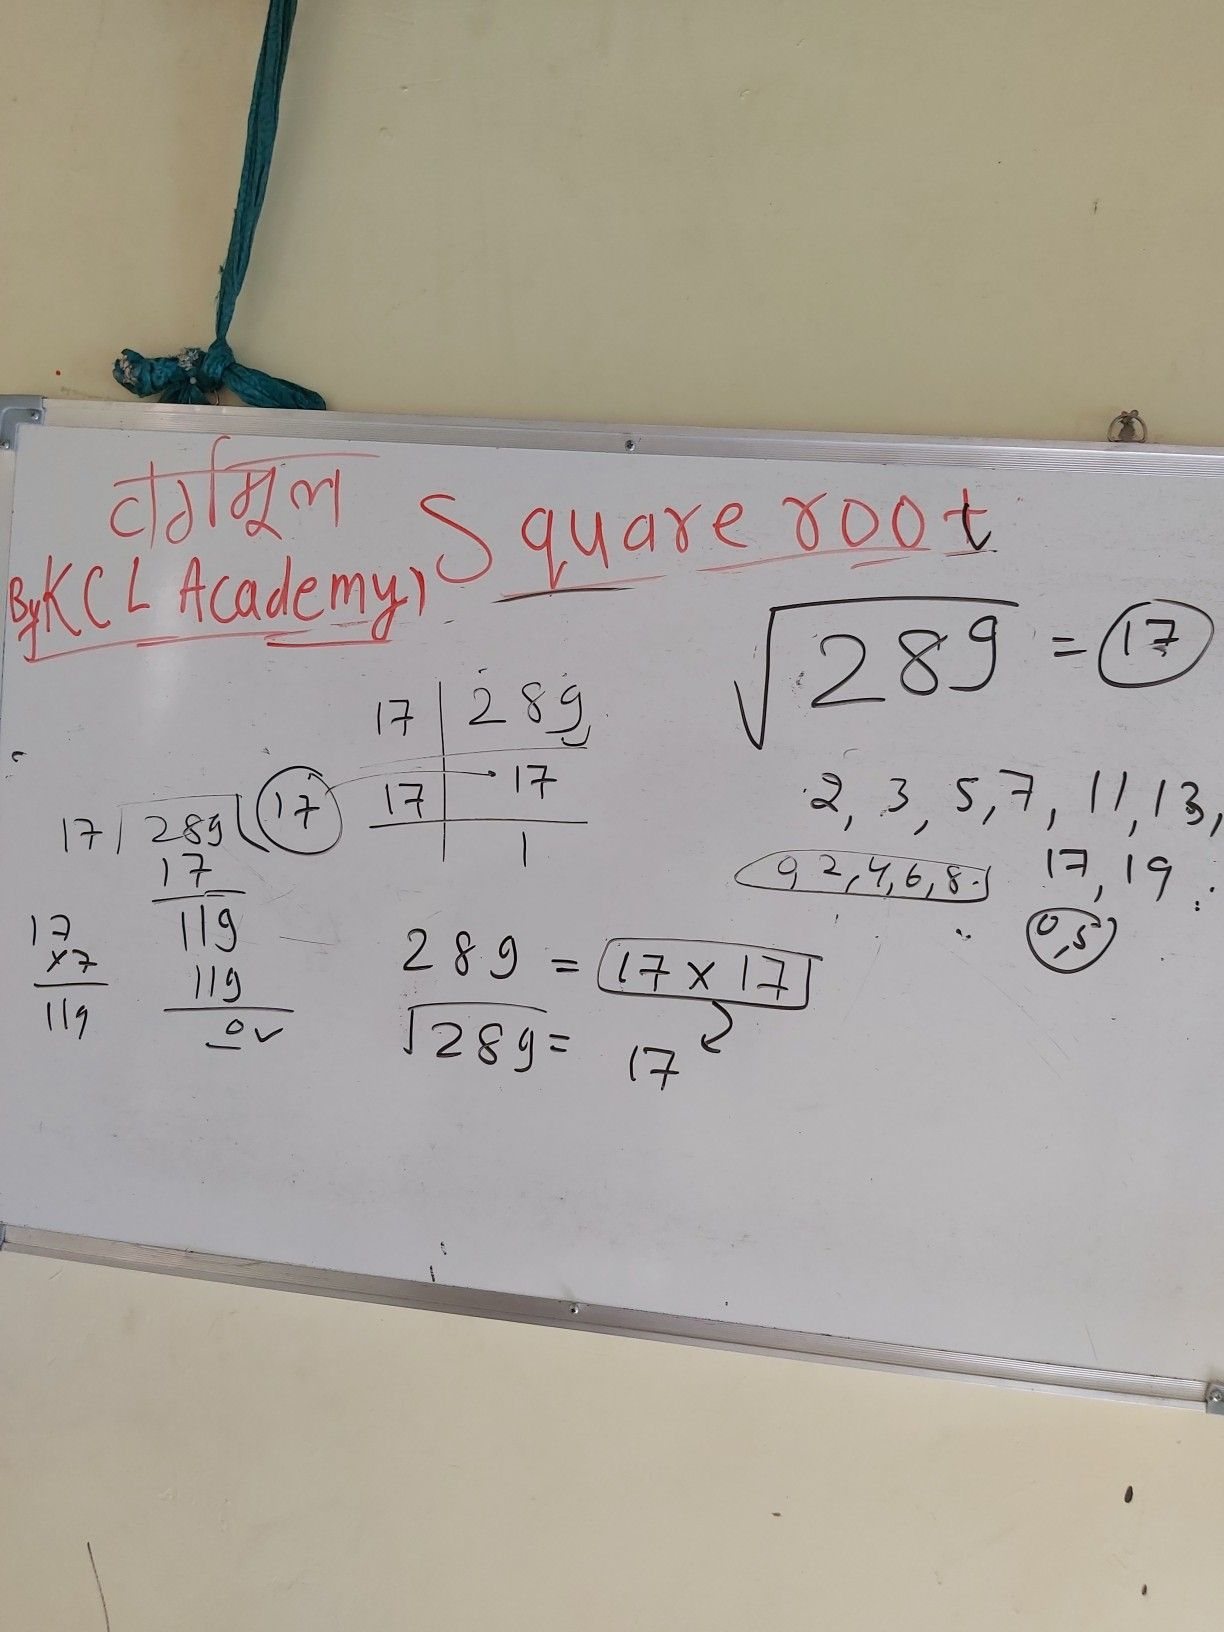 289 Square Root Of 289 In Hindi À¤µà¤° À¤—म À¤² À¤¨ À¤• À¤²à¤¨ By Kclacademy In 2020 Square Roots Prime Factorization Root